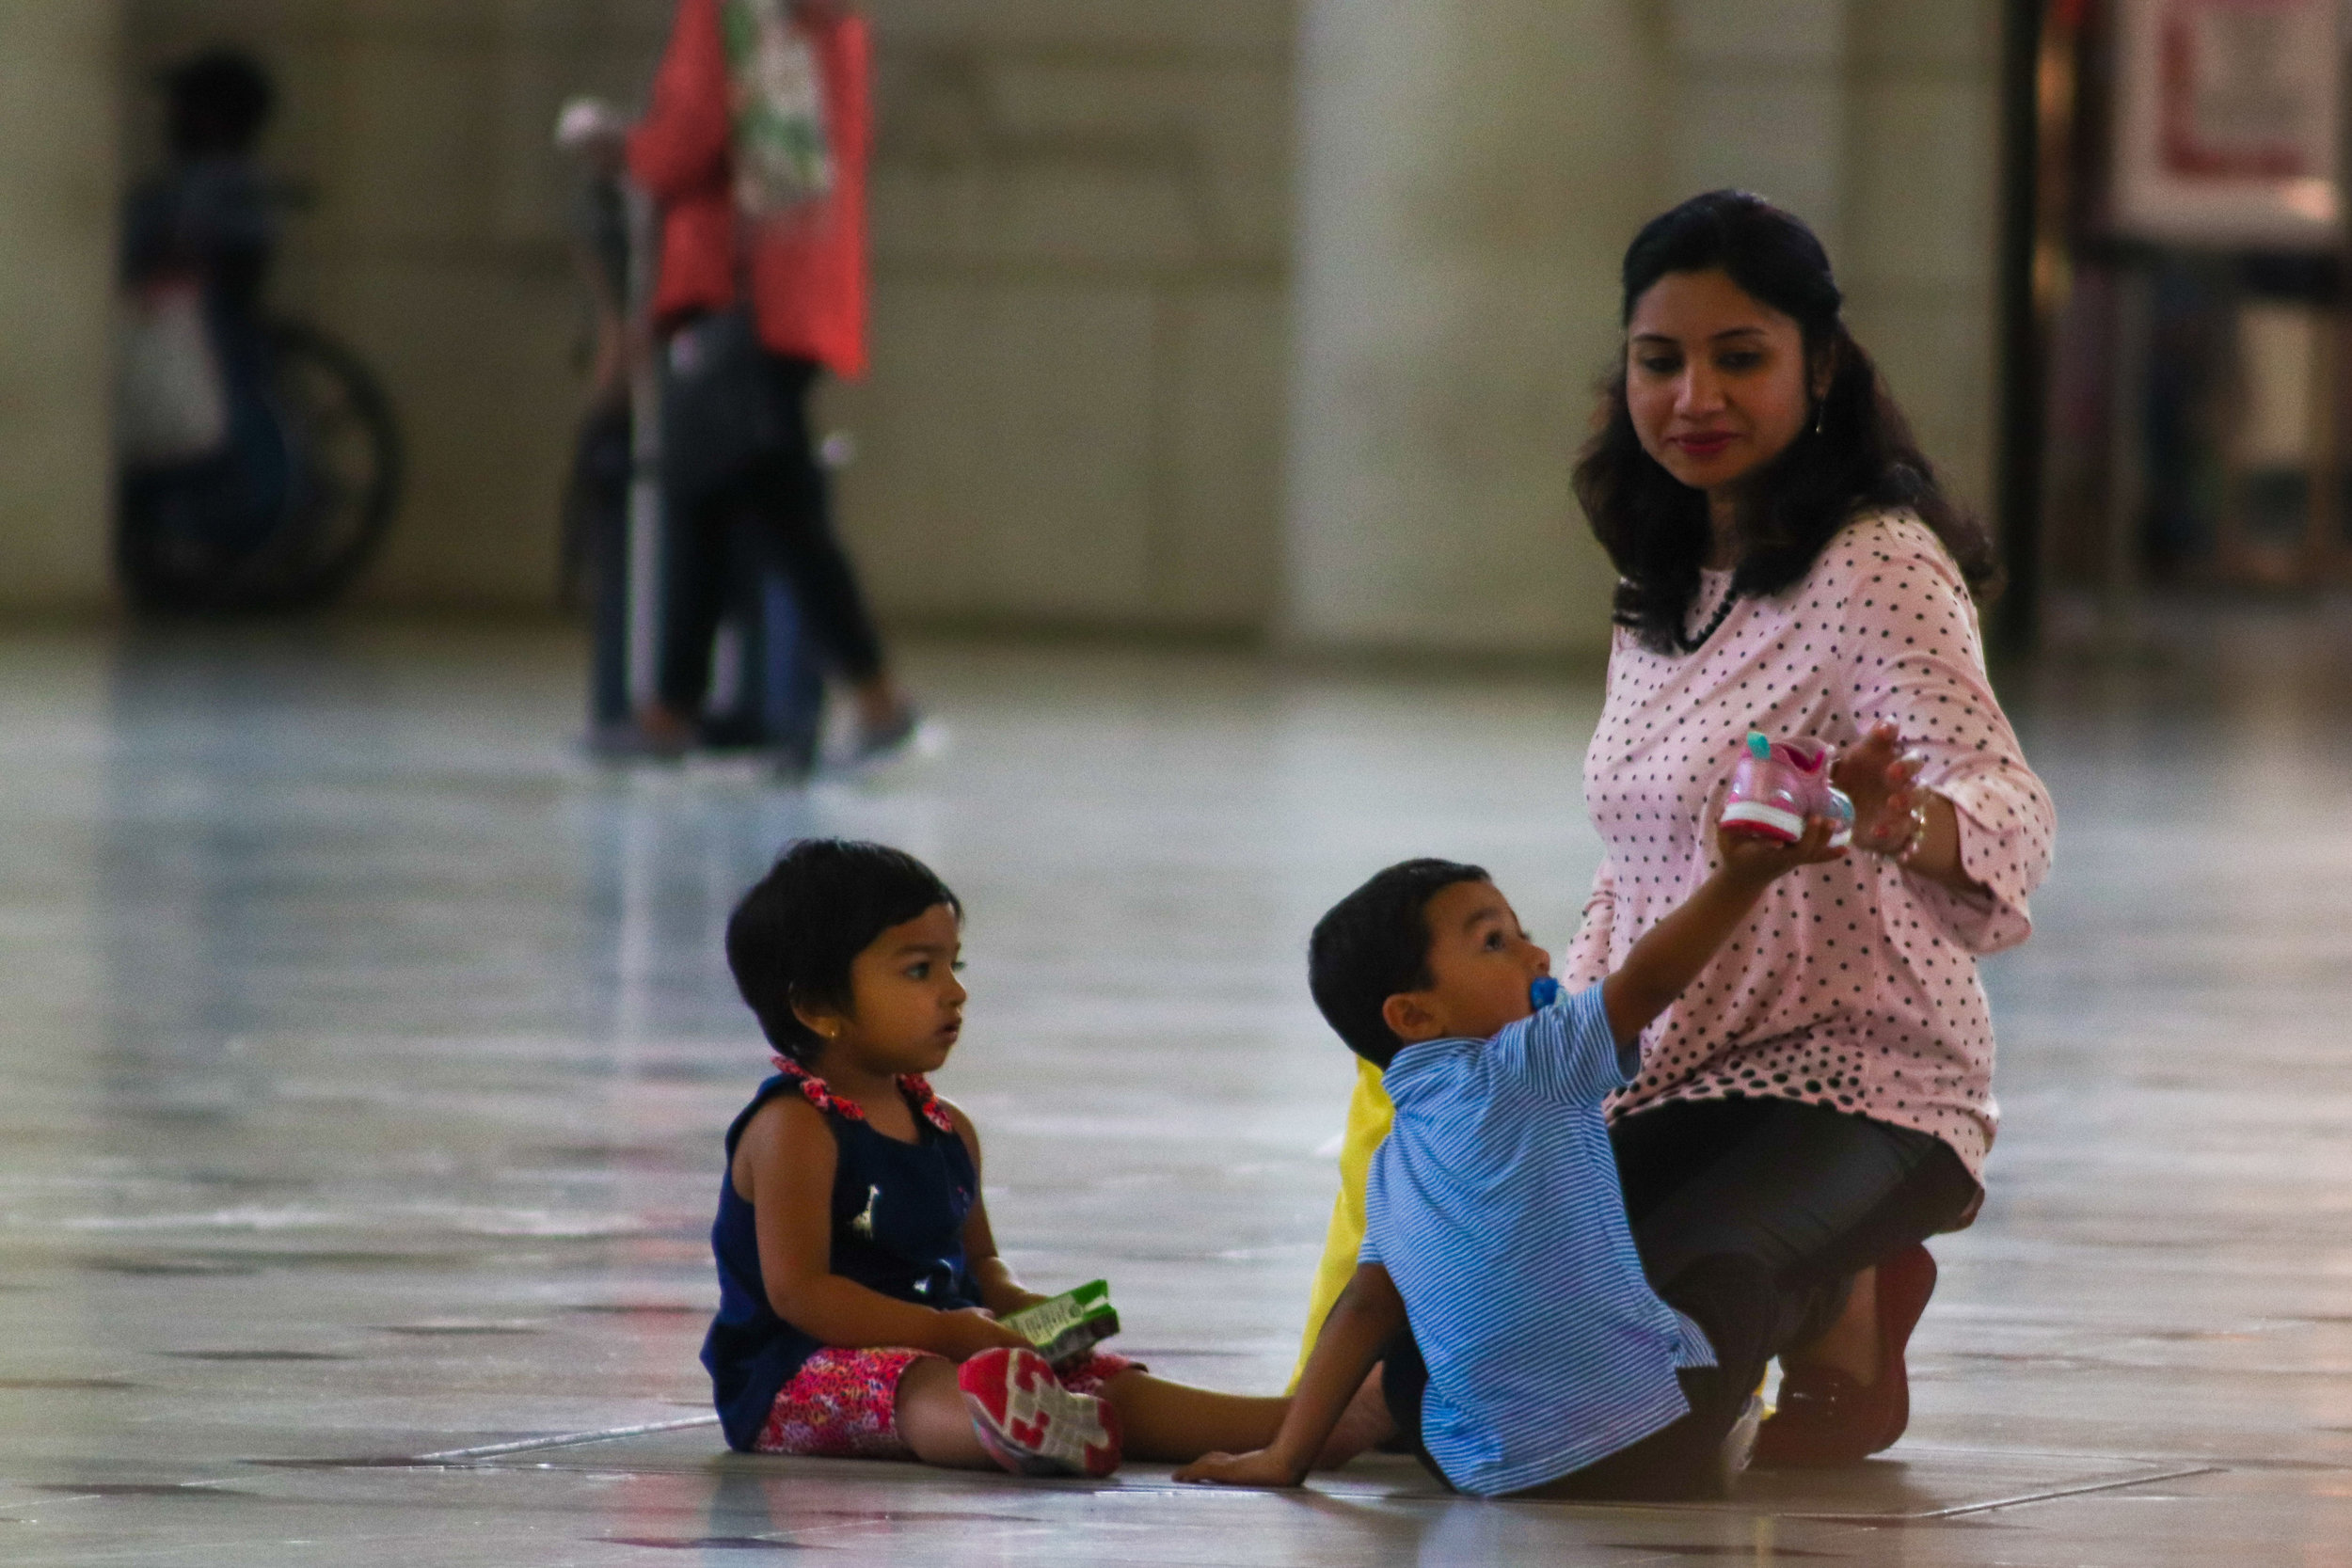 In the middle of Union Station, a mother helps to put on her daughter's shoe, which fell off during an intense game of tag with her brother.